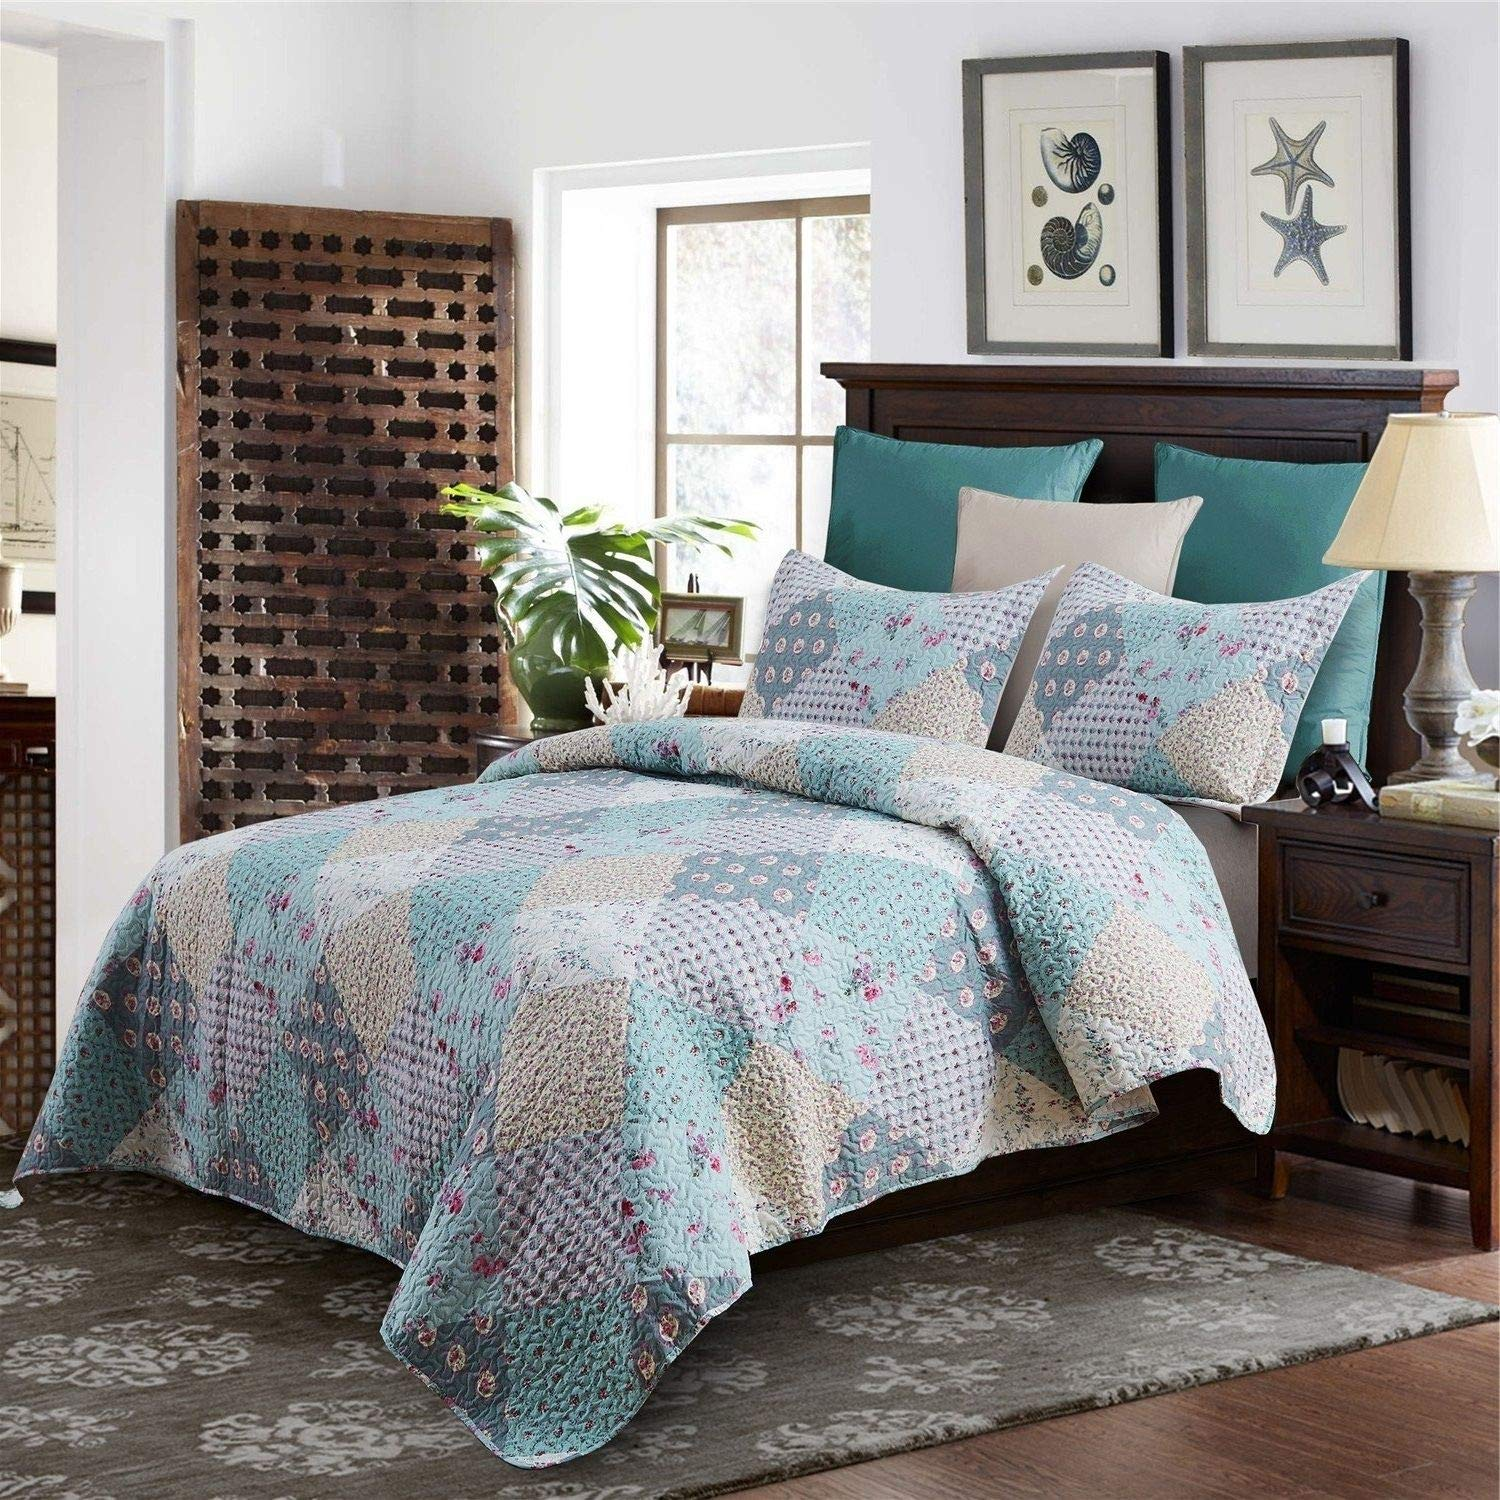 Floral Patchwork Quilt Set King Size - Teal, Diamonds Flowers Print - 3 Piece Bed Sets - French Country Farmhouse Style Reversible Bedding, Shabby Cottage Cabin Bedroom - Ultra Soft Microfiber